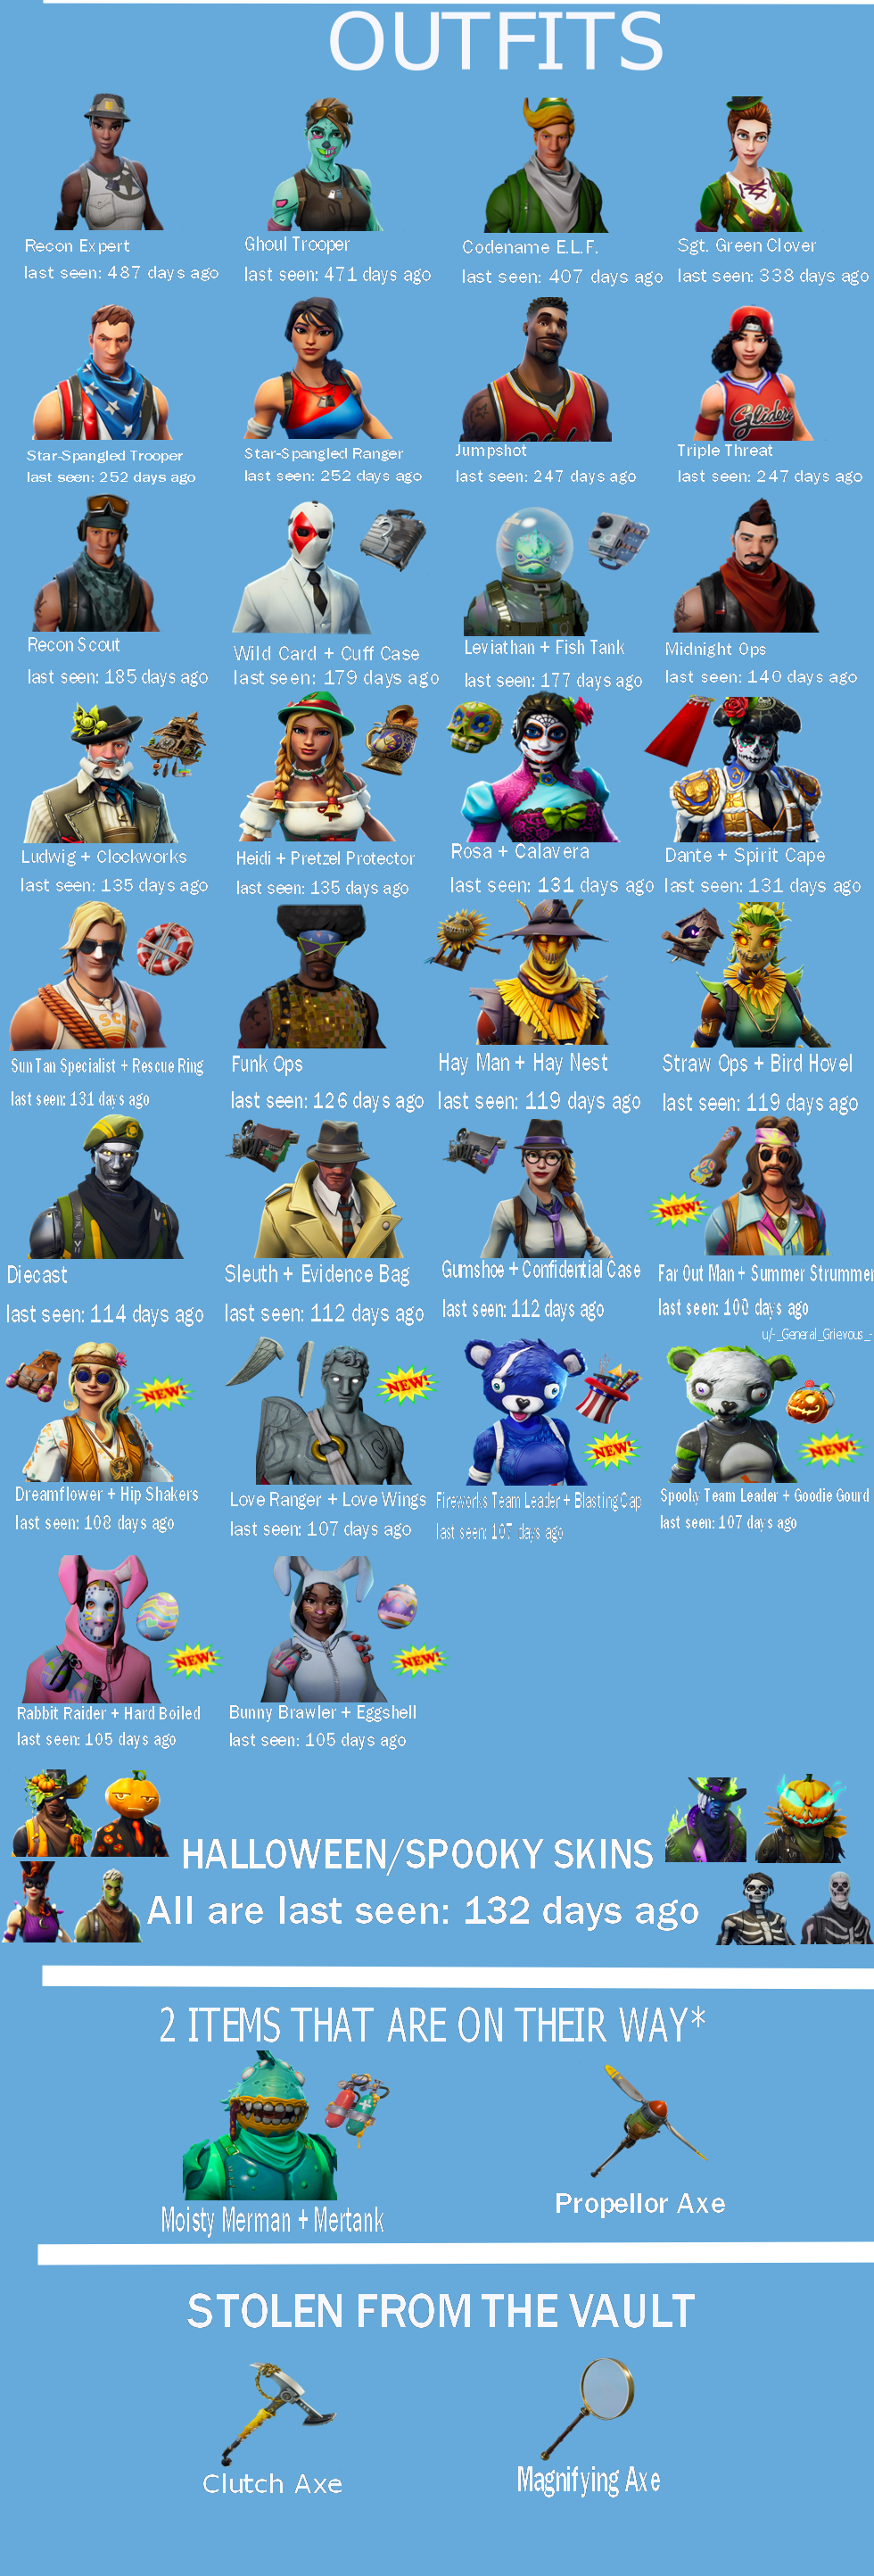 Here Are The 10 Rarest Item Shop Skins In Fortnite Right Now